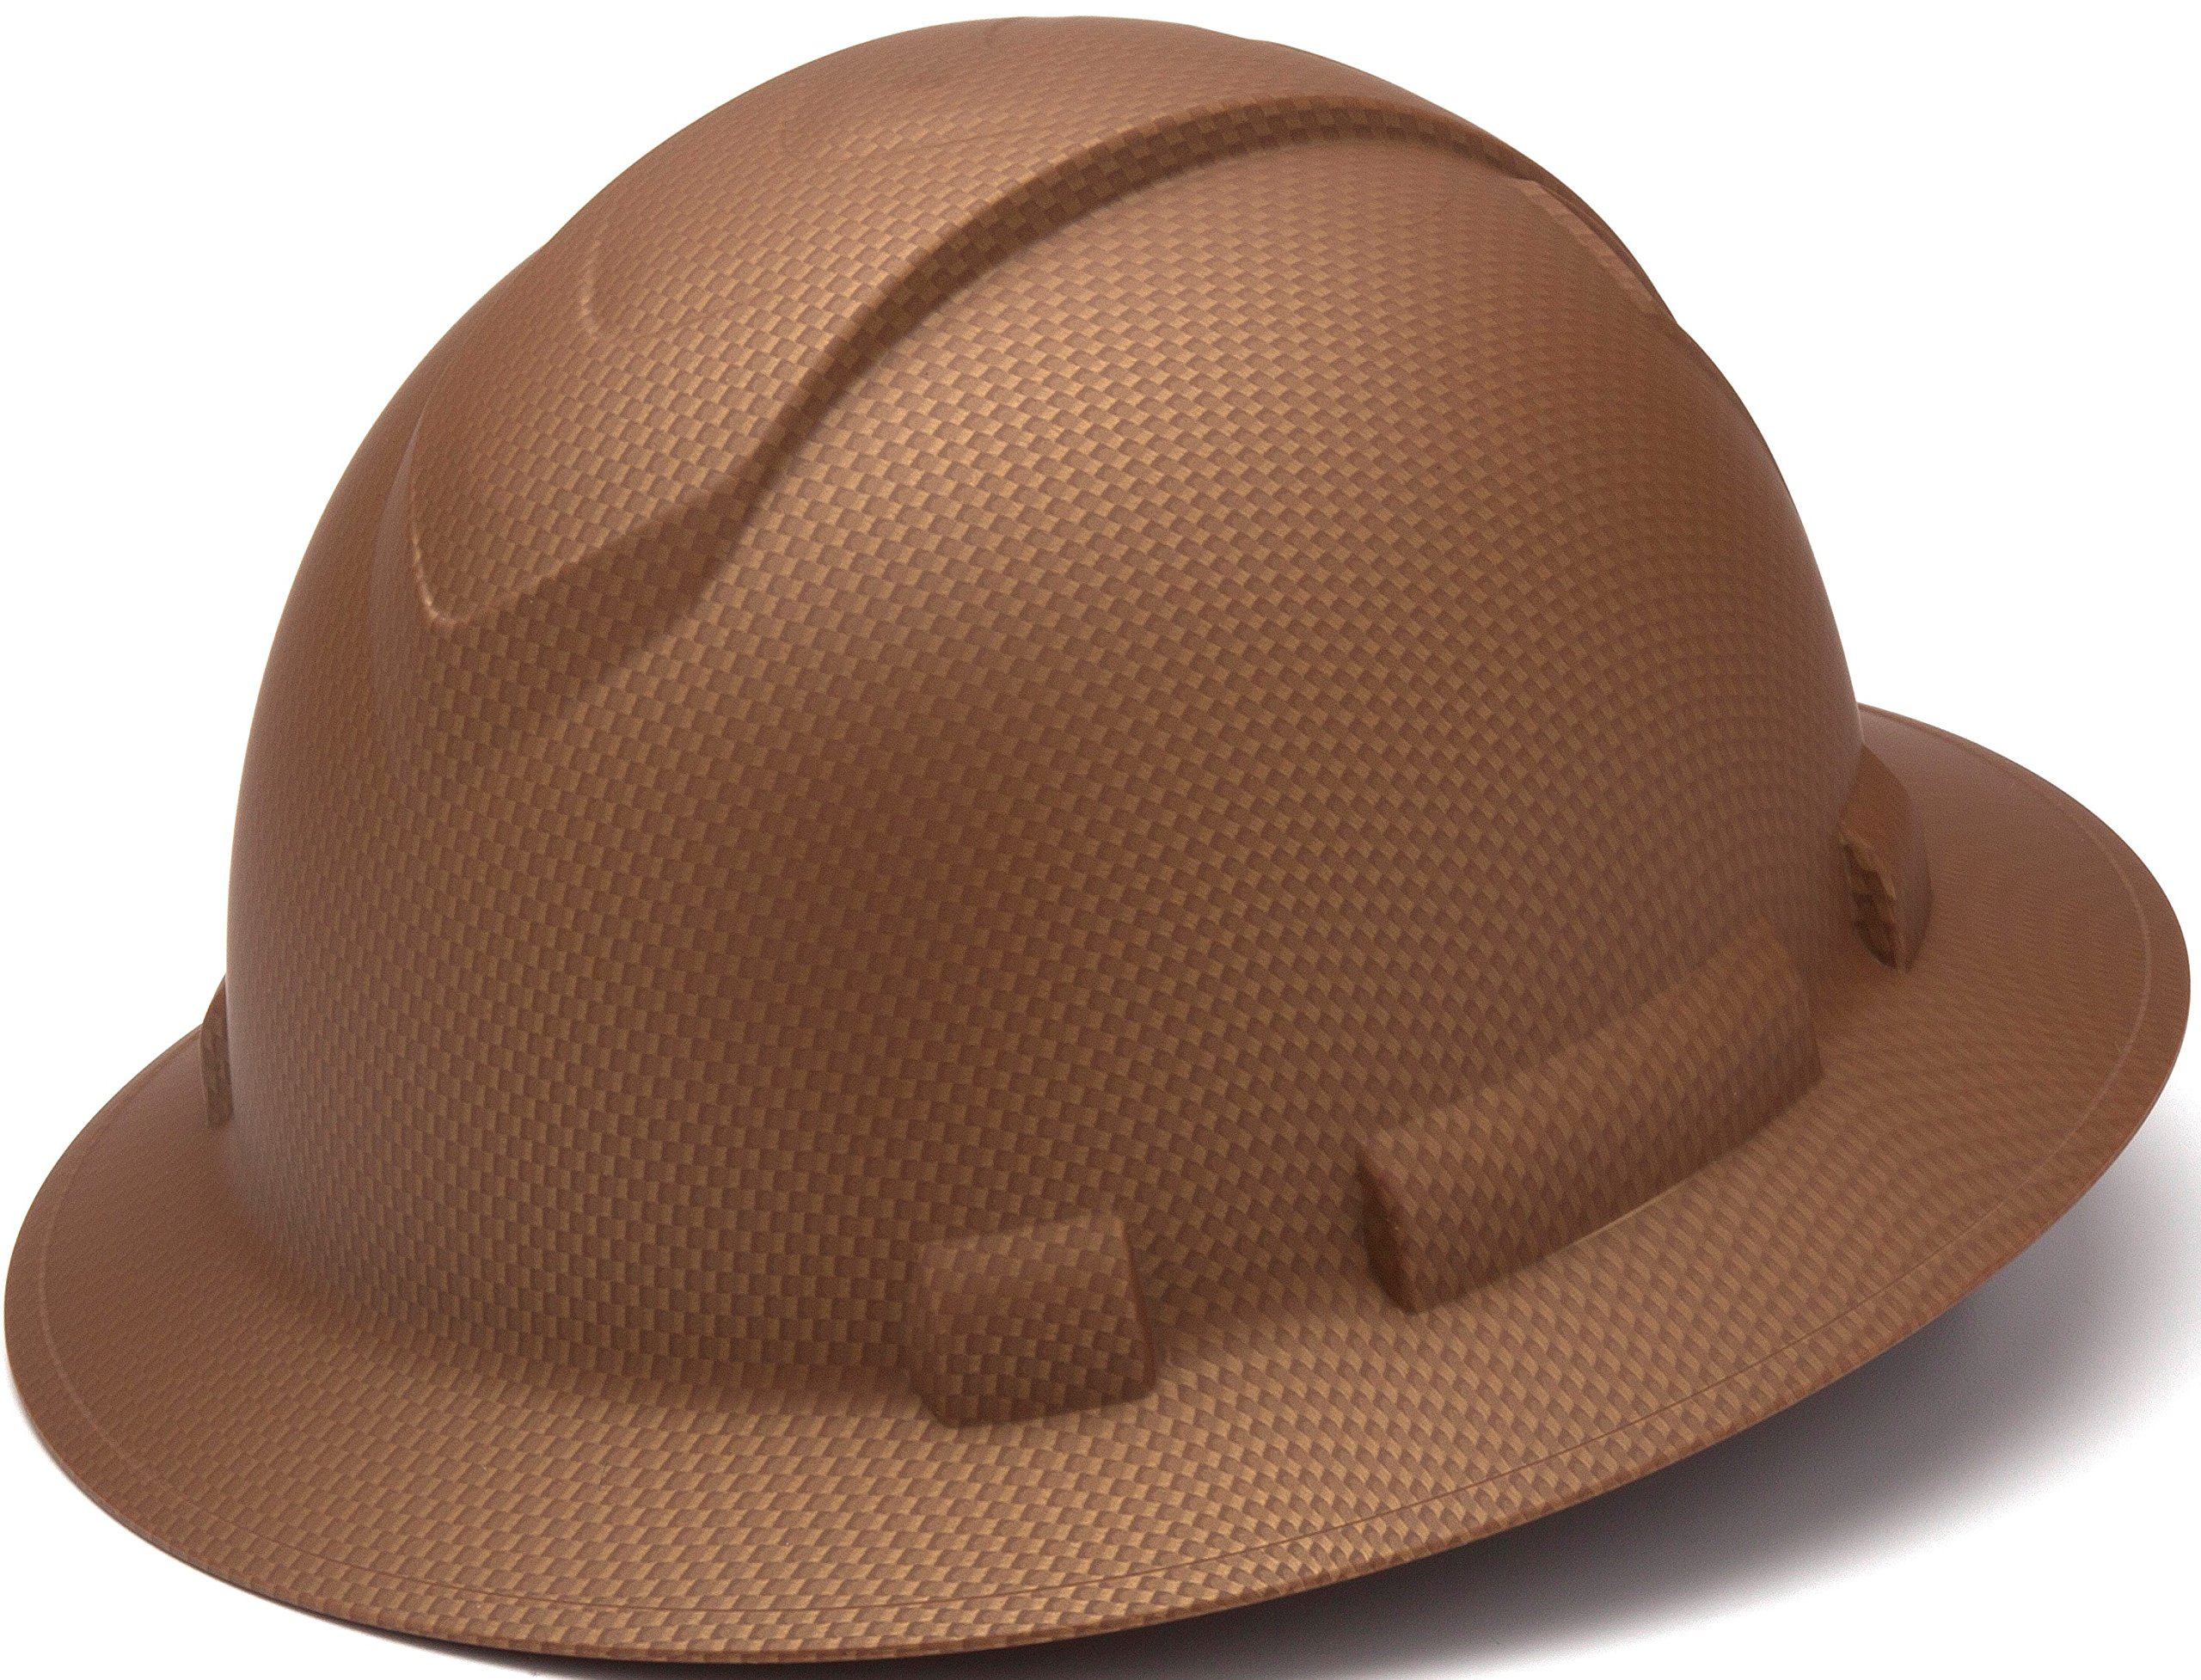 Pyramex Safety PYRAMEX - HP54118 - Copper - Full Brim Ridgeline Full Brim Graphite Pattern Hard Hat, Copper Graphite Pattern